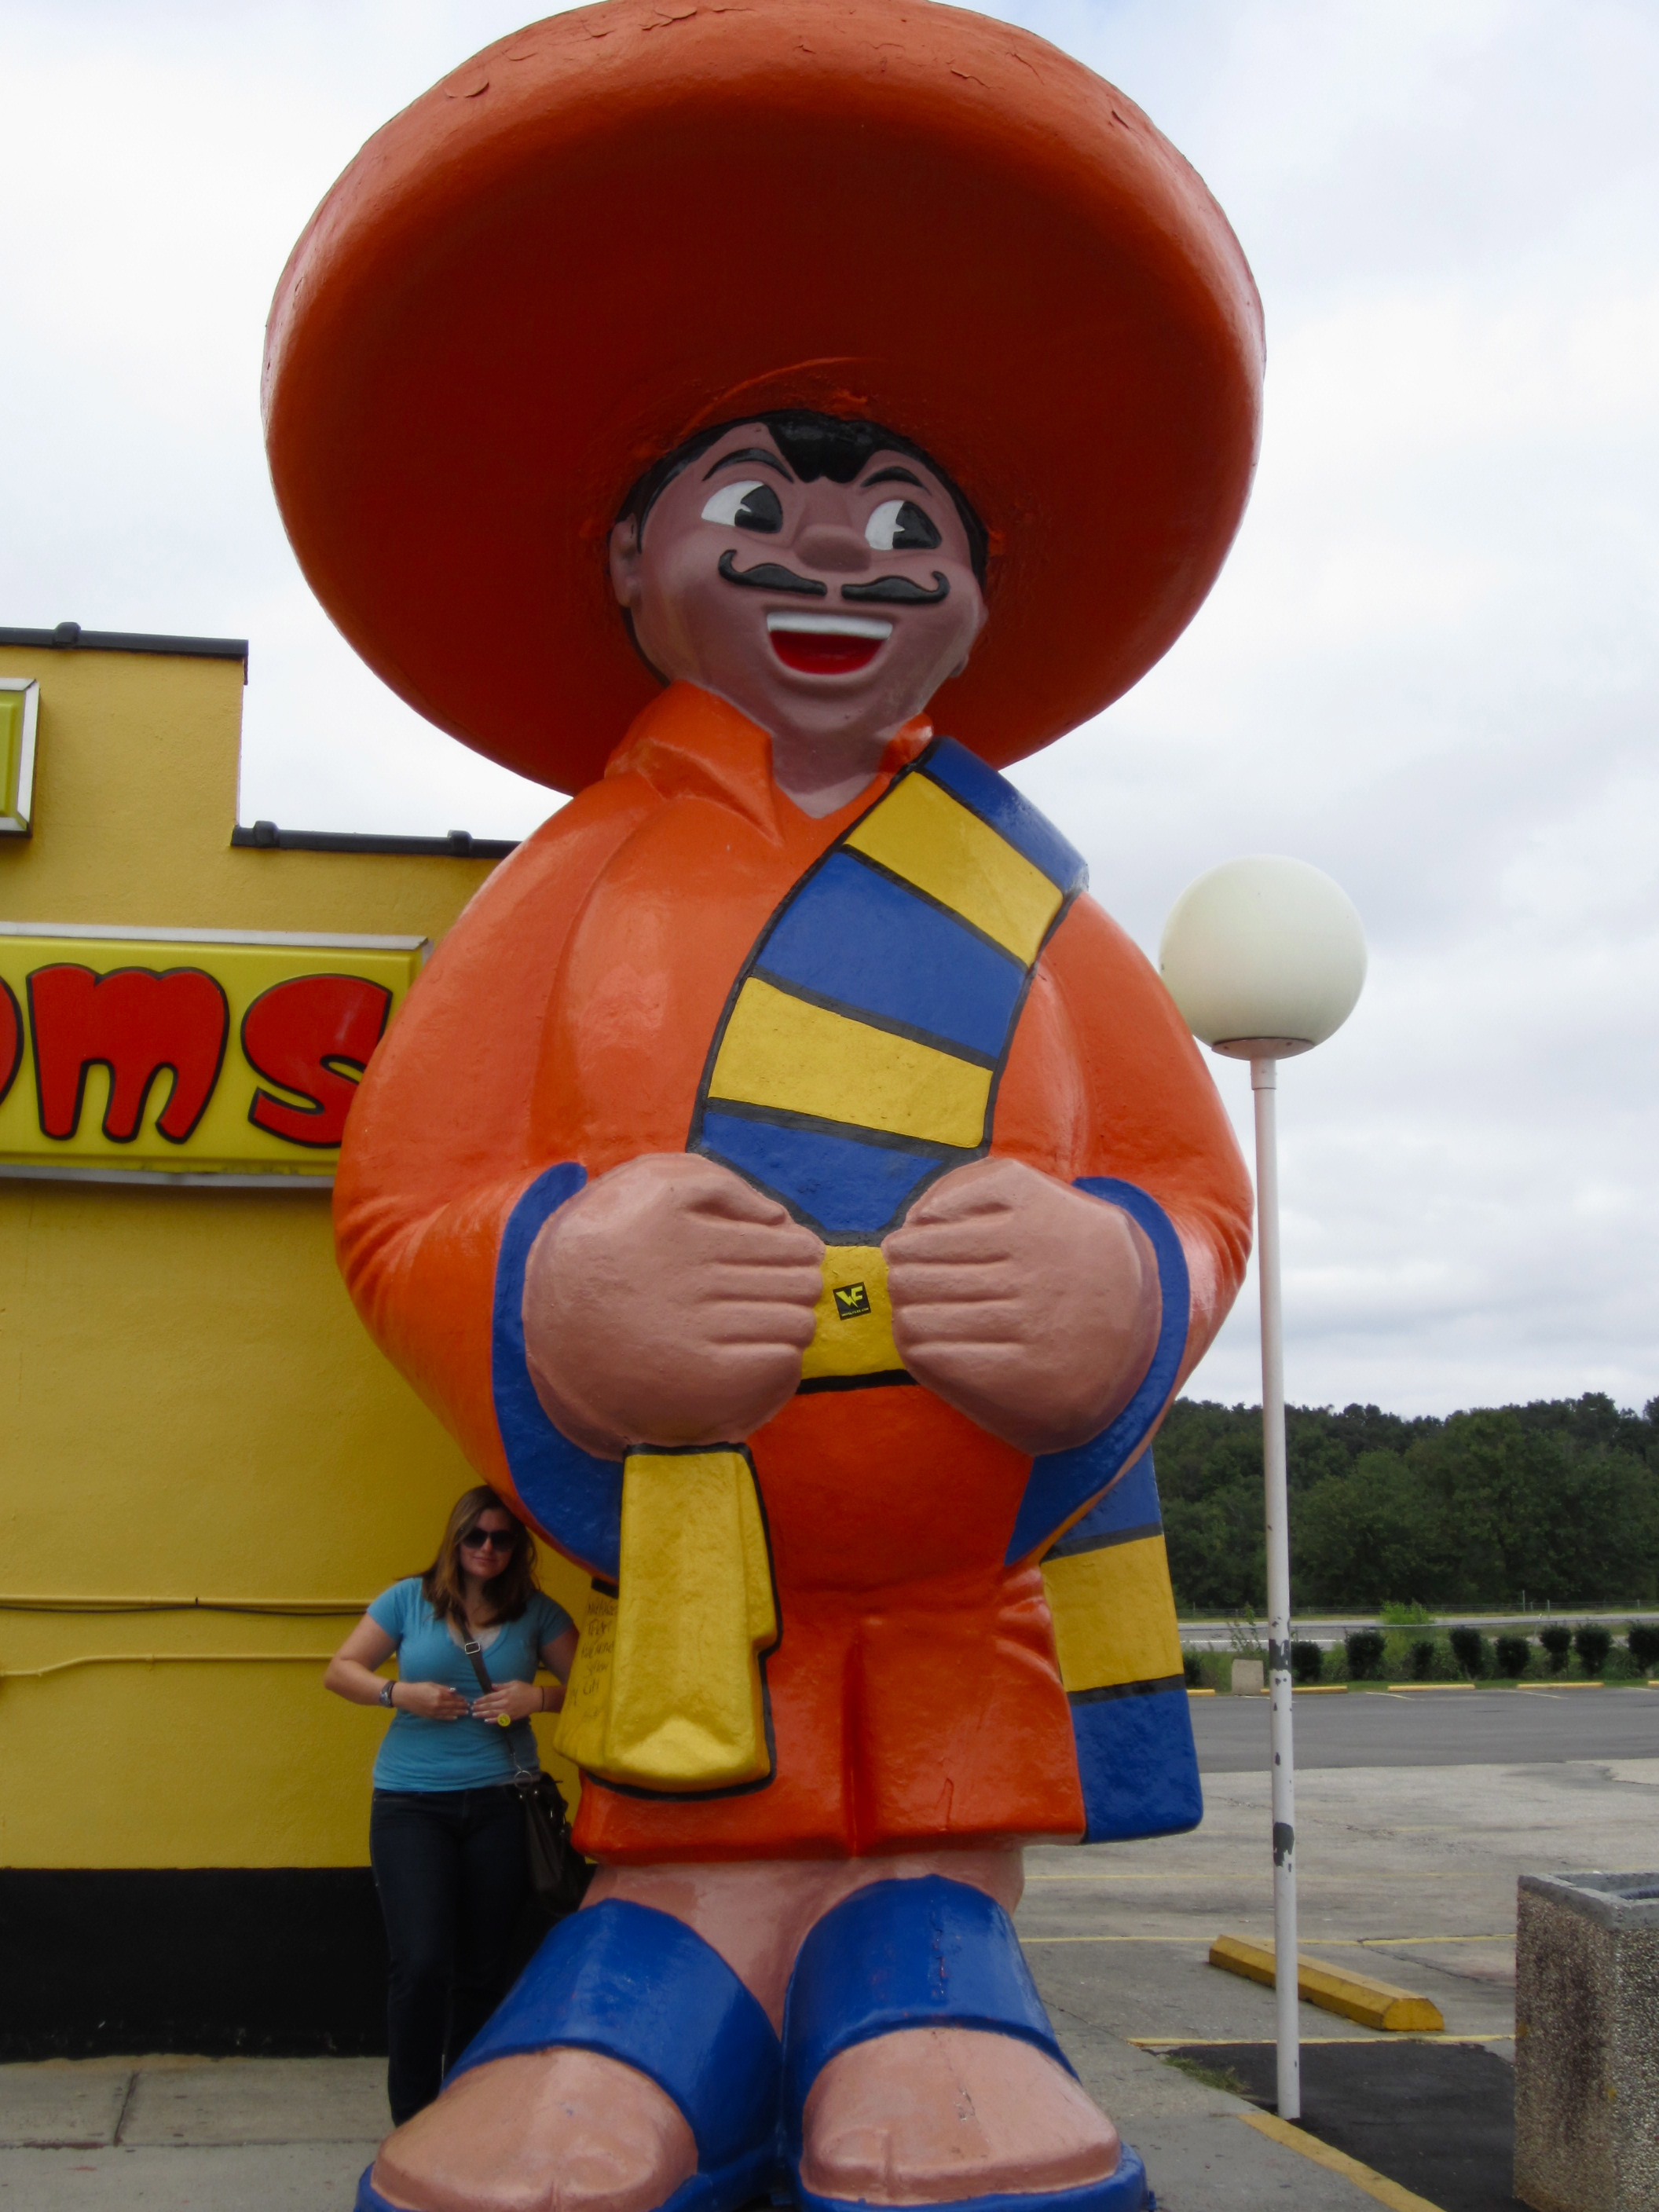 Pedro from South of the Border